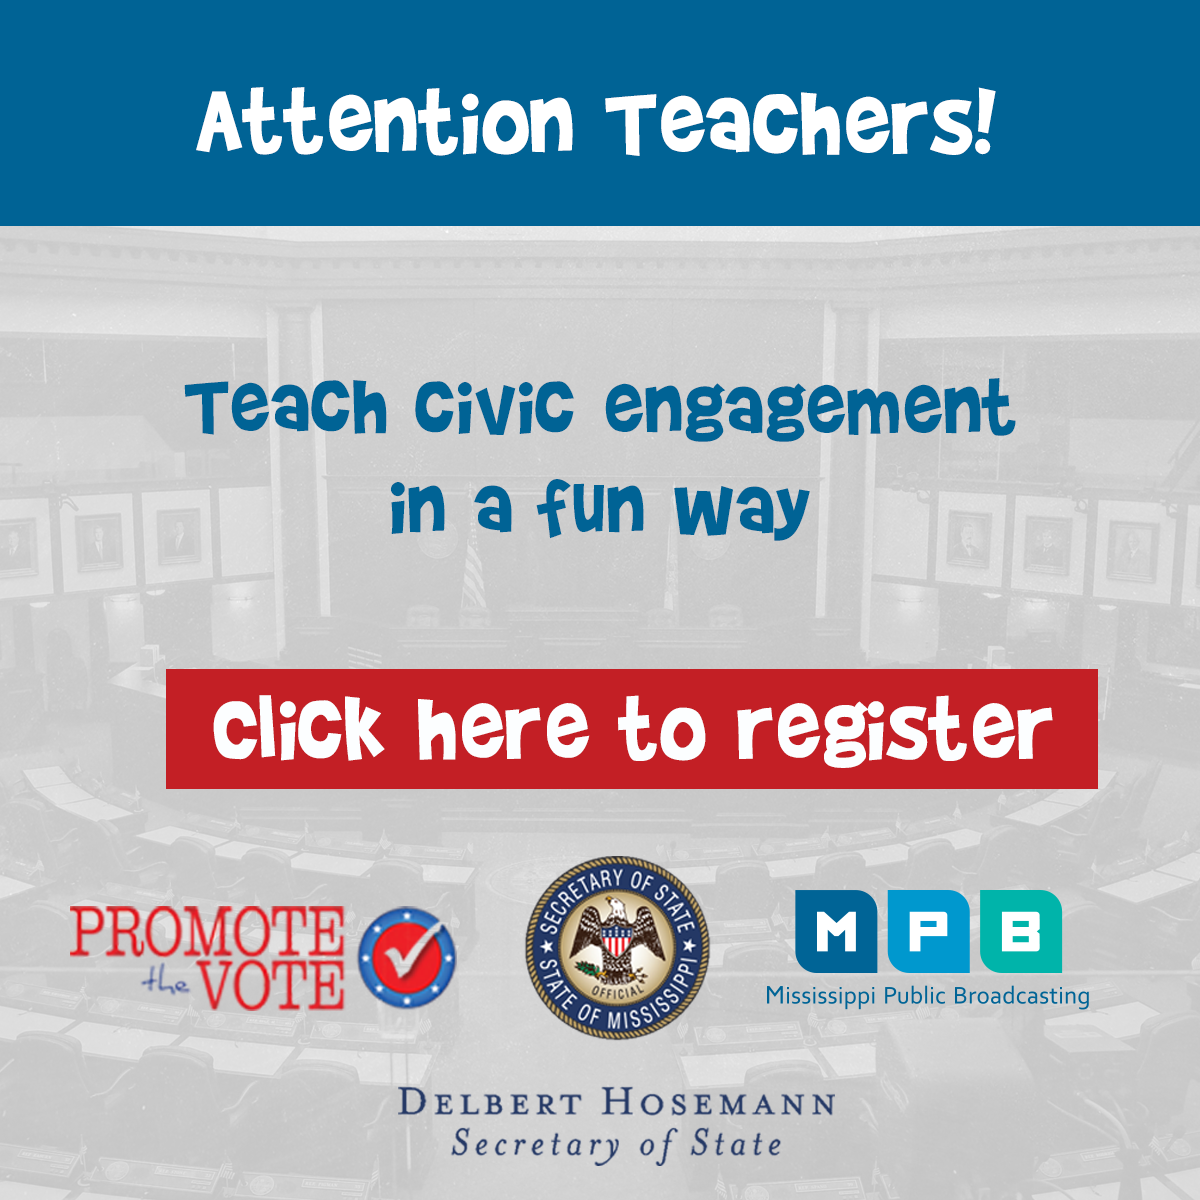 Register your class for Promote the Vote!